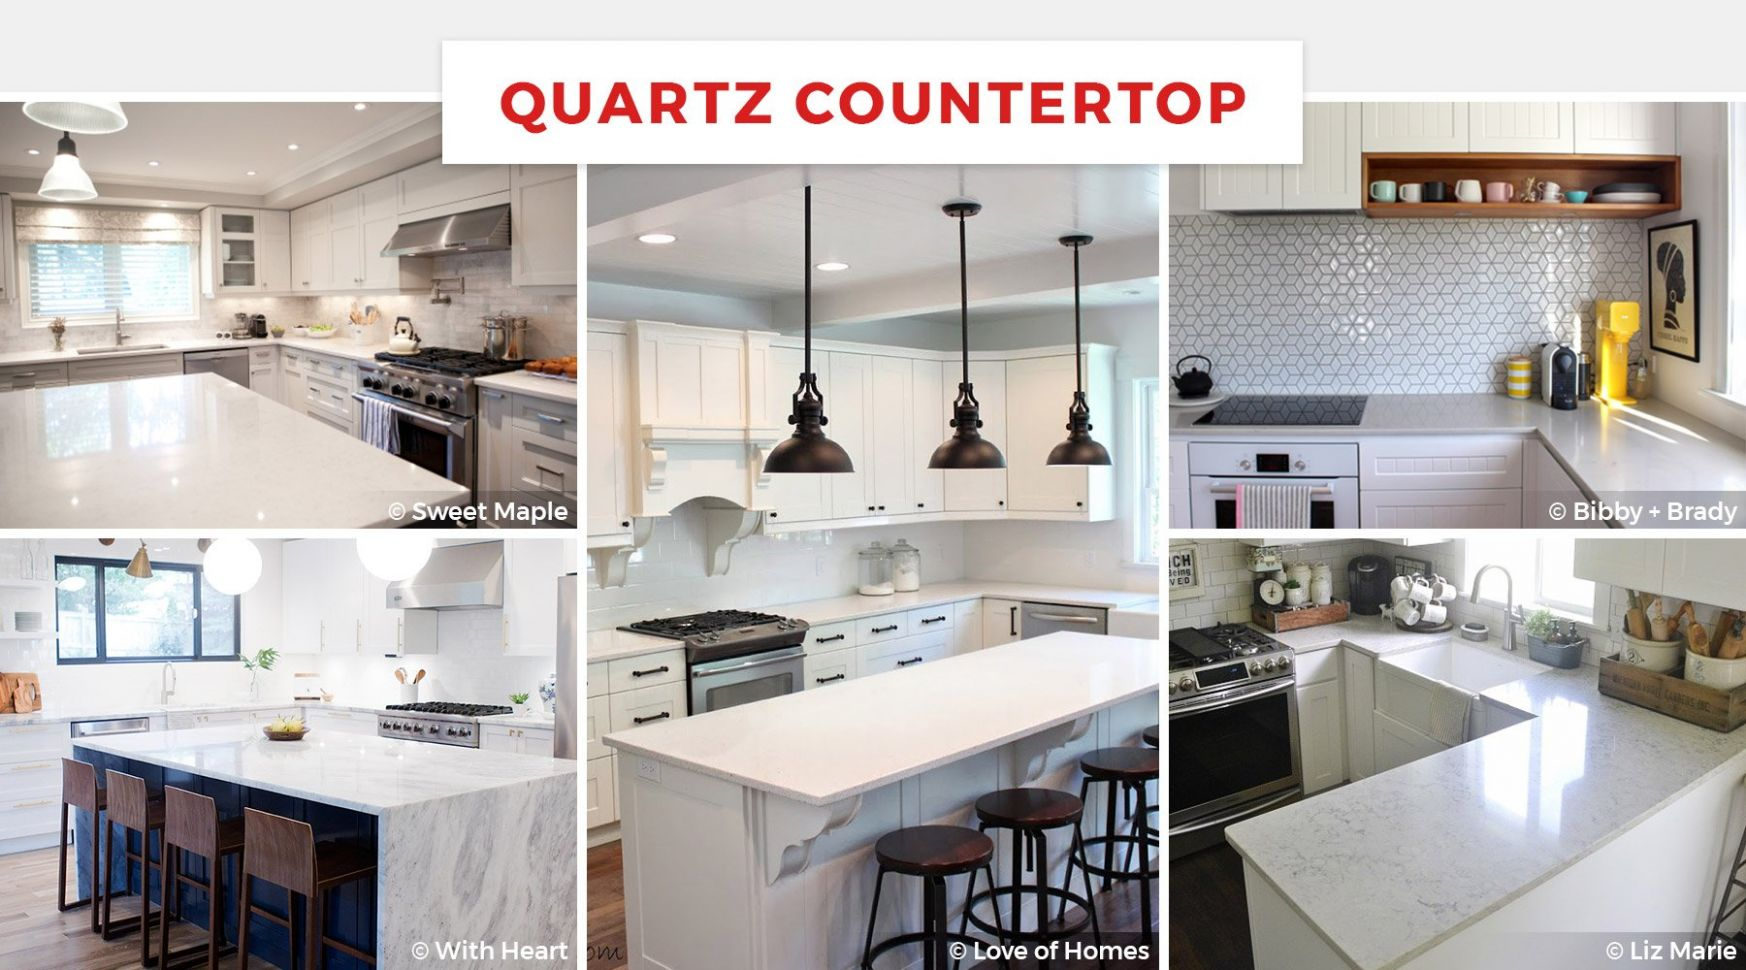 8+ Best Kitchen Countertop Ideas for 8 - kitchen ideas with quartz countertops